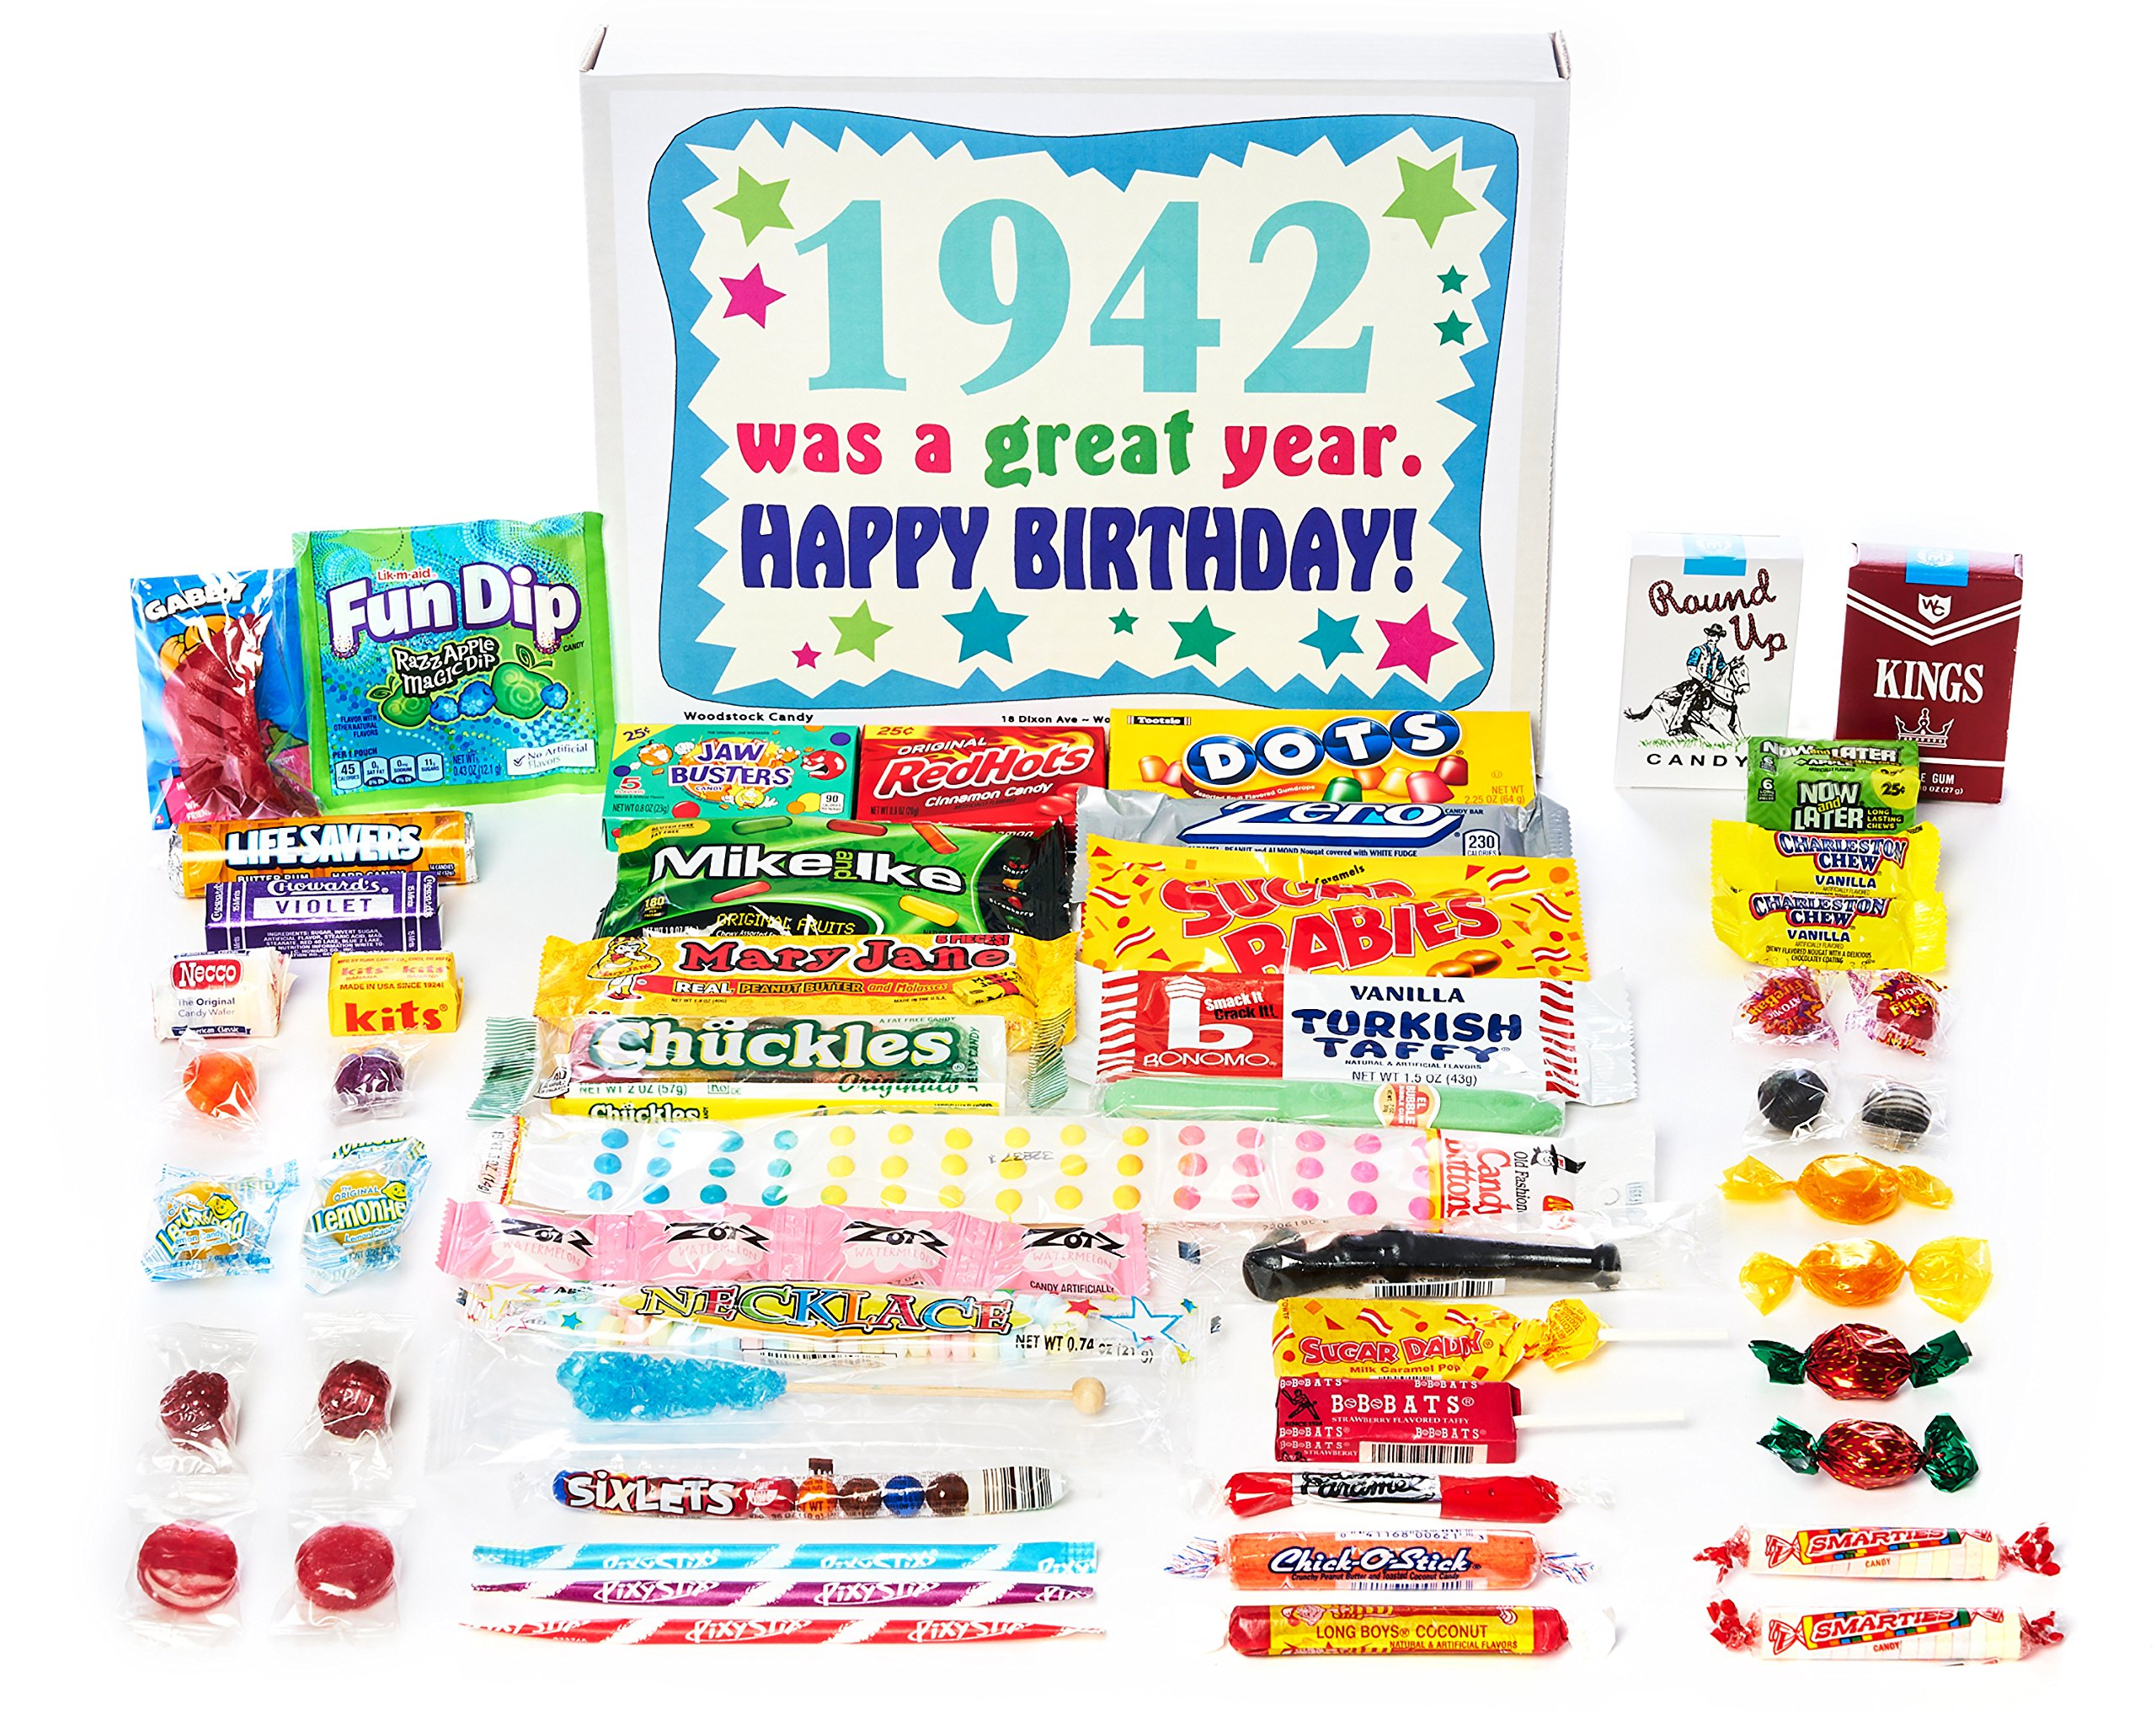 Woodstock Candy ~ 1942 77th Birthday Gift Box of Nostalgic Retro Candy from Childhood for 77 Year Old Man or Woman Born 1942